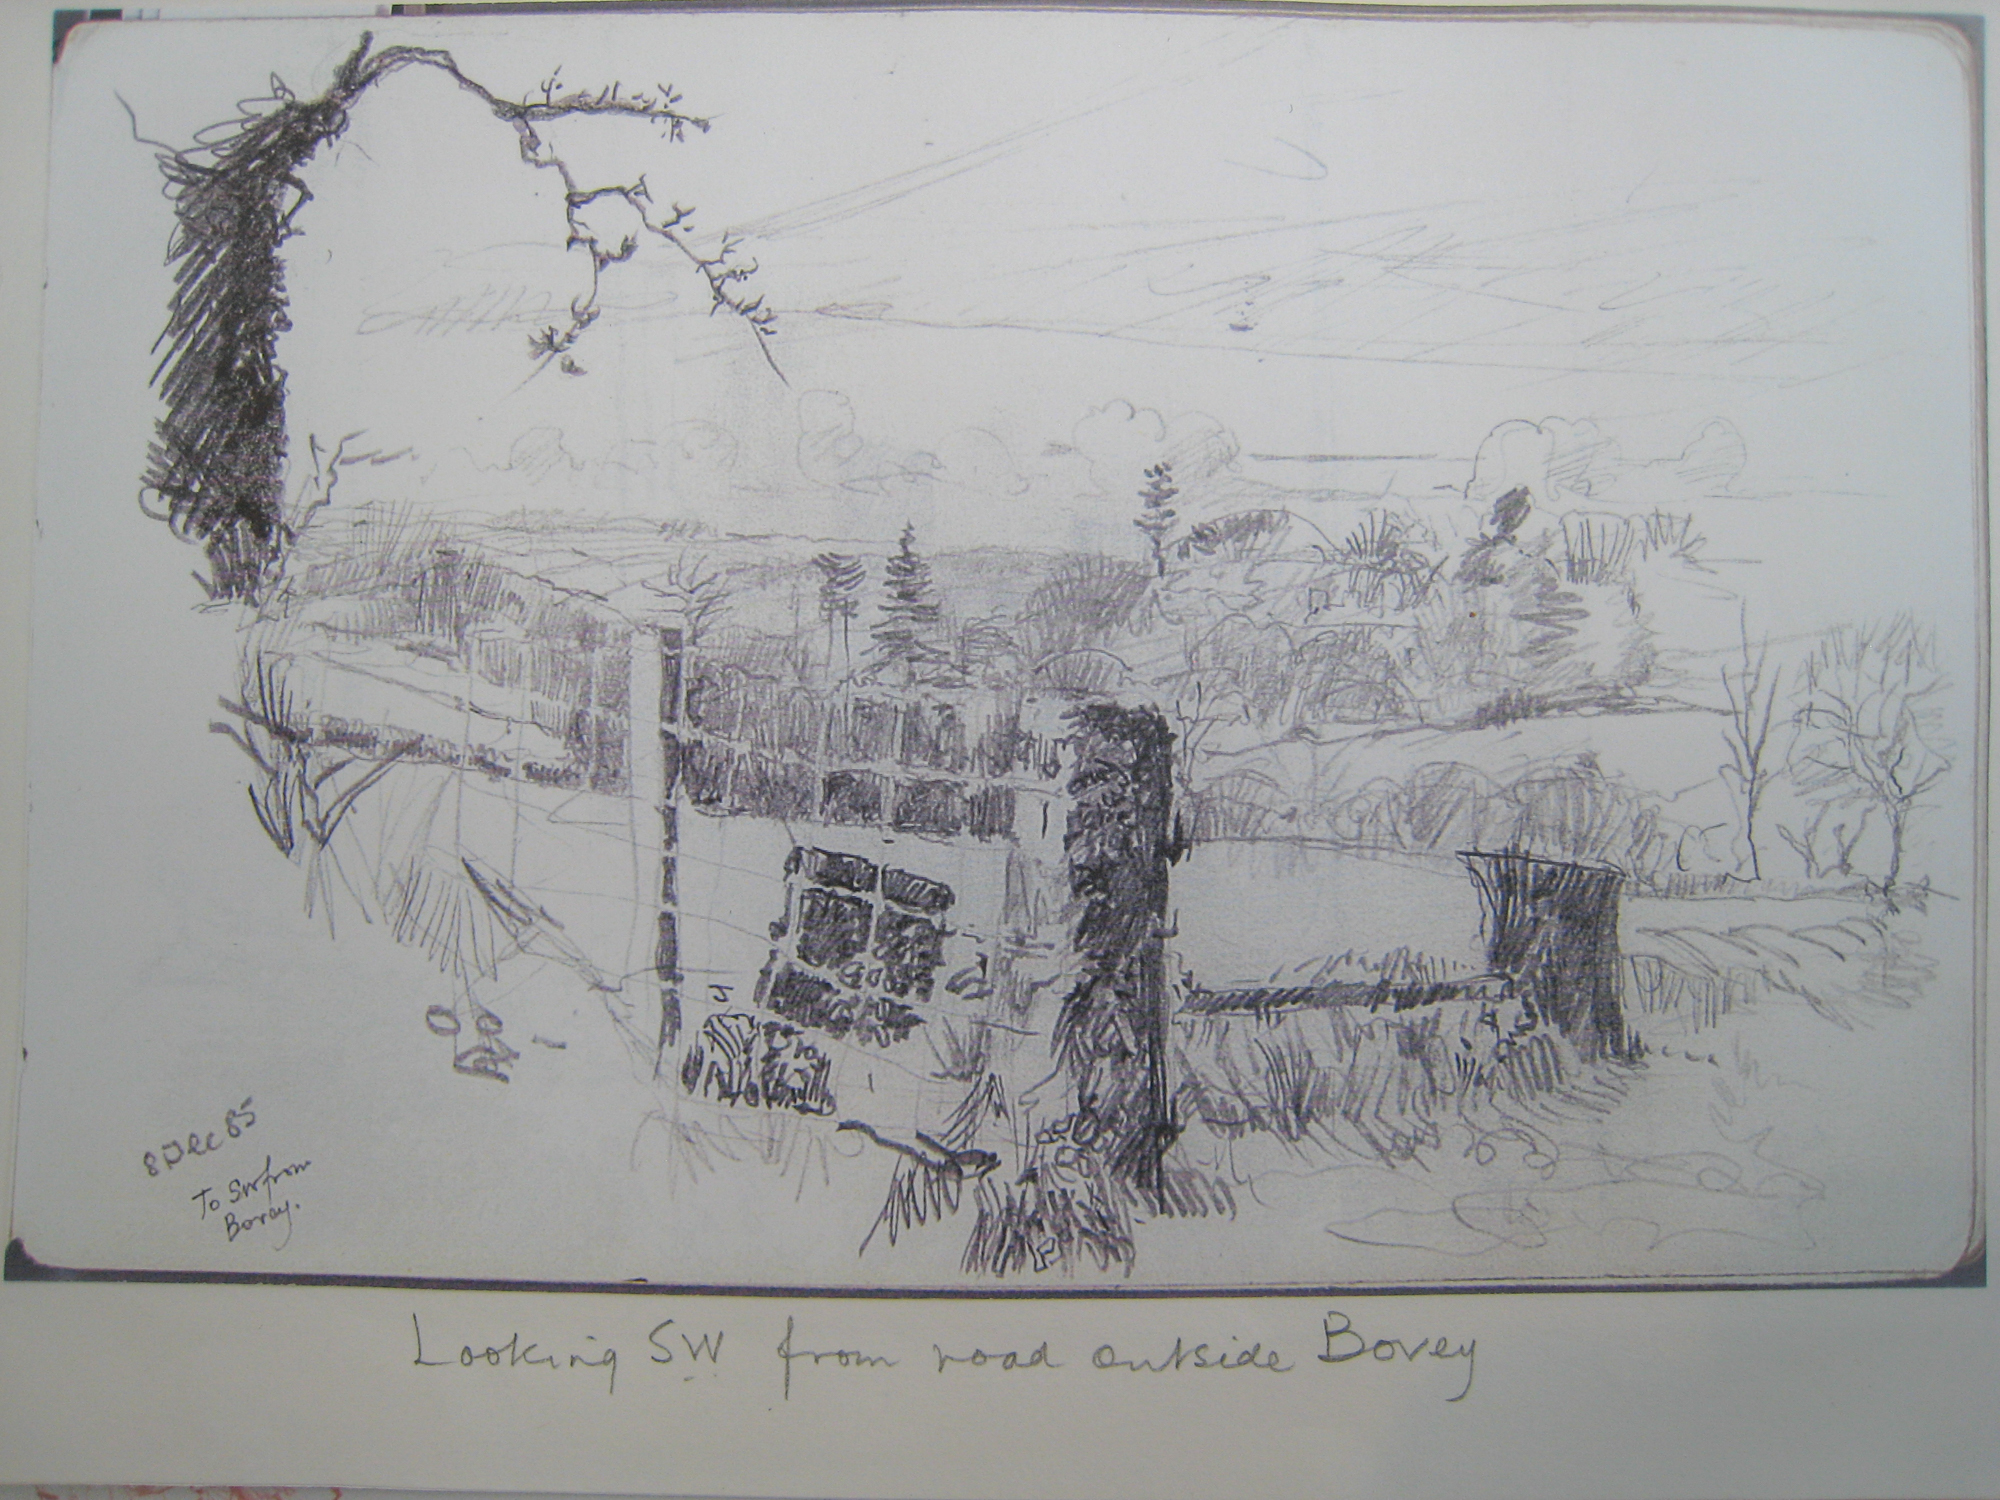 Germansweek lansdcape, view looking SW from road outside Bovey